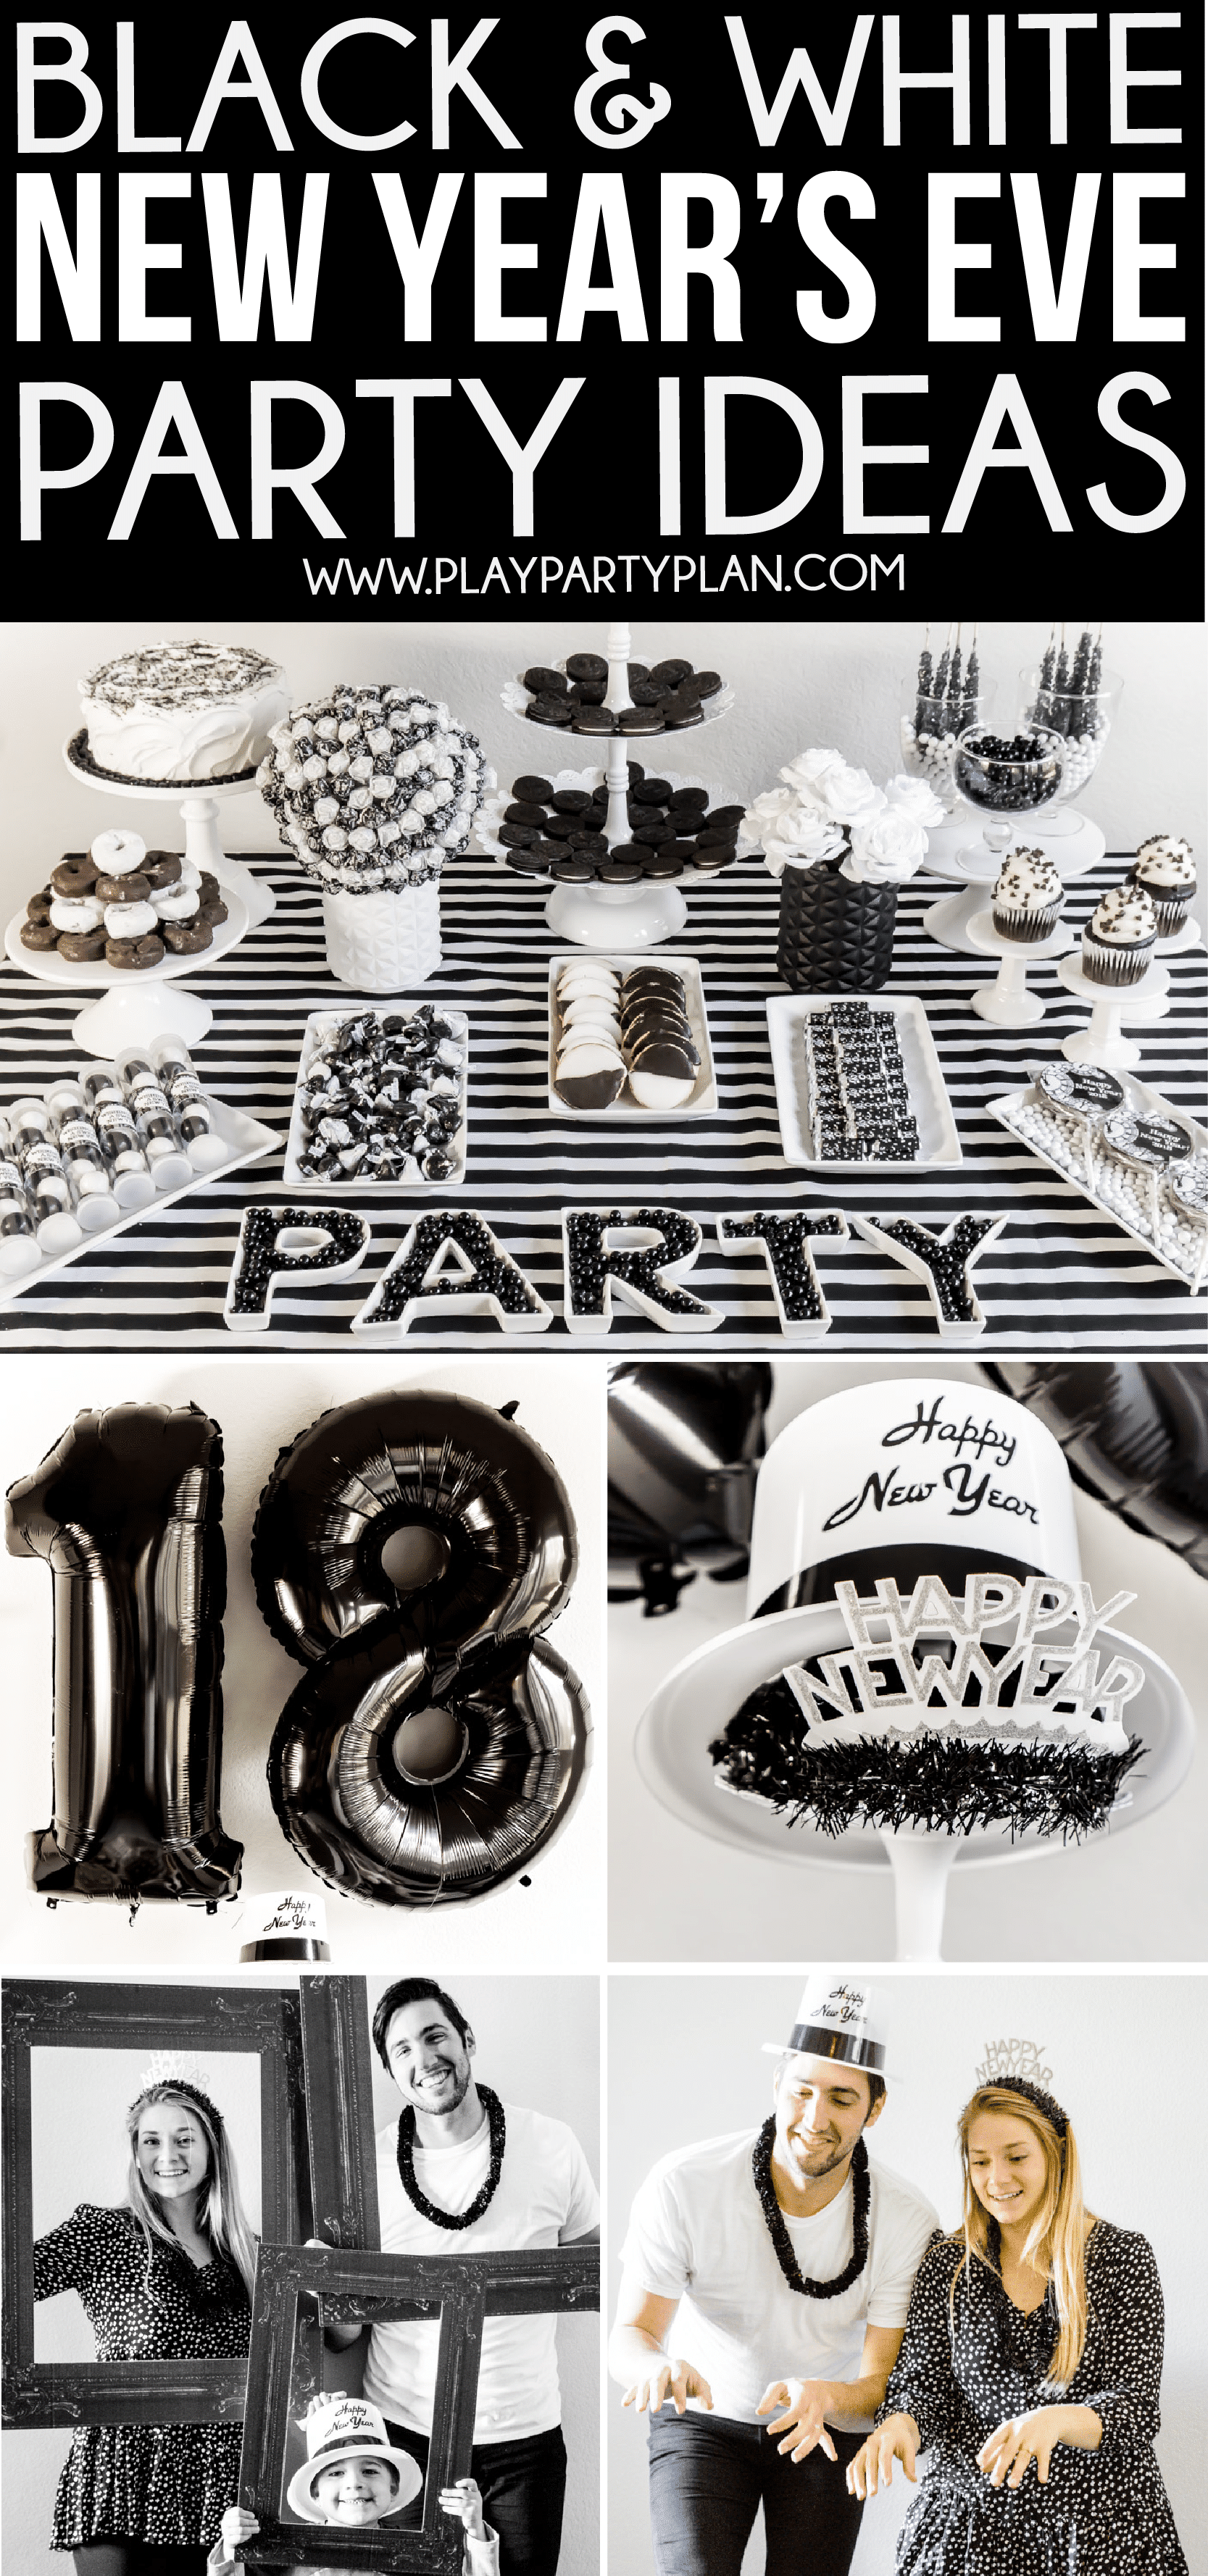 Great black and white party ideas for New Year's Eve